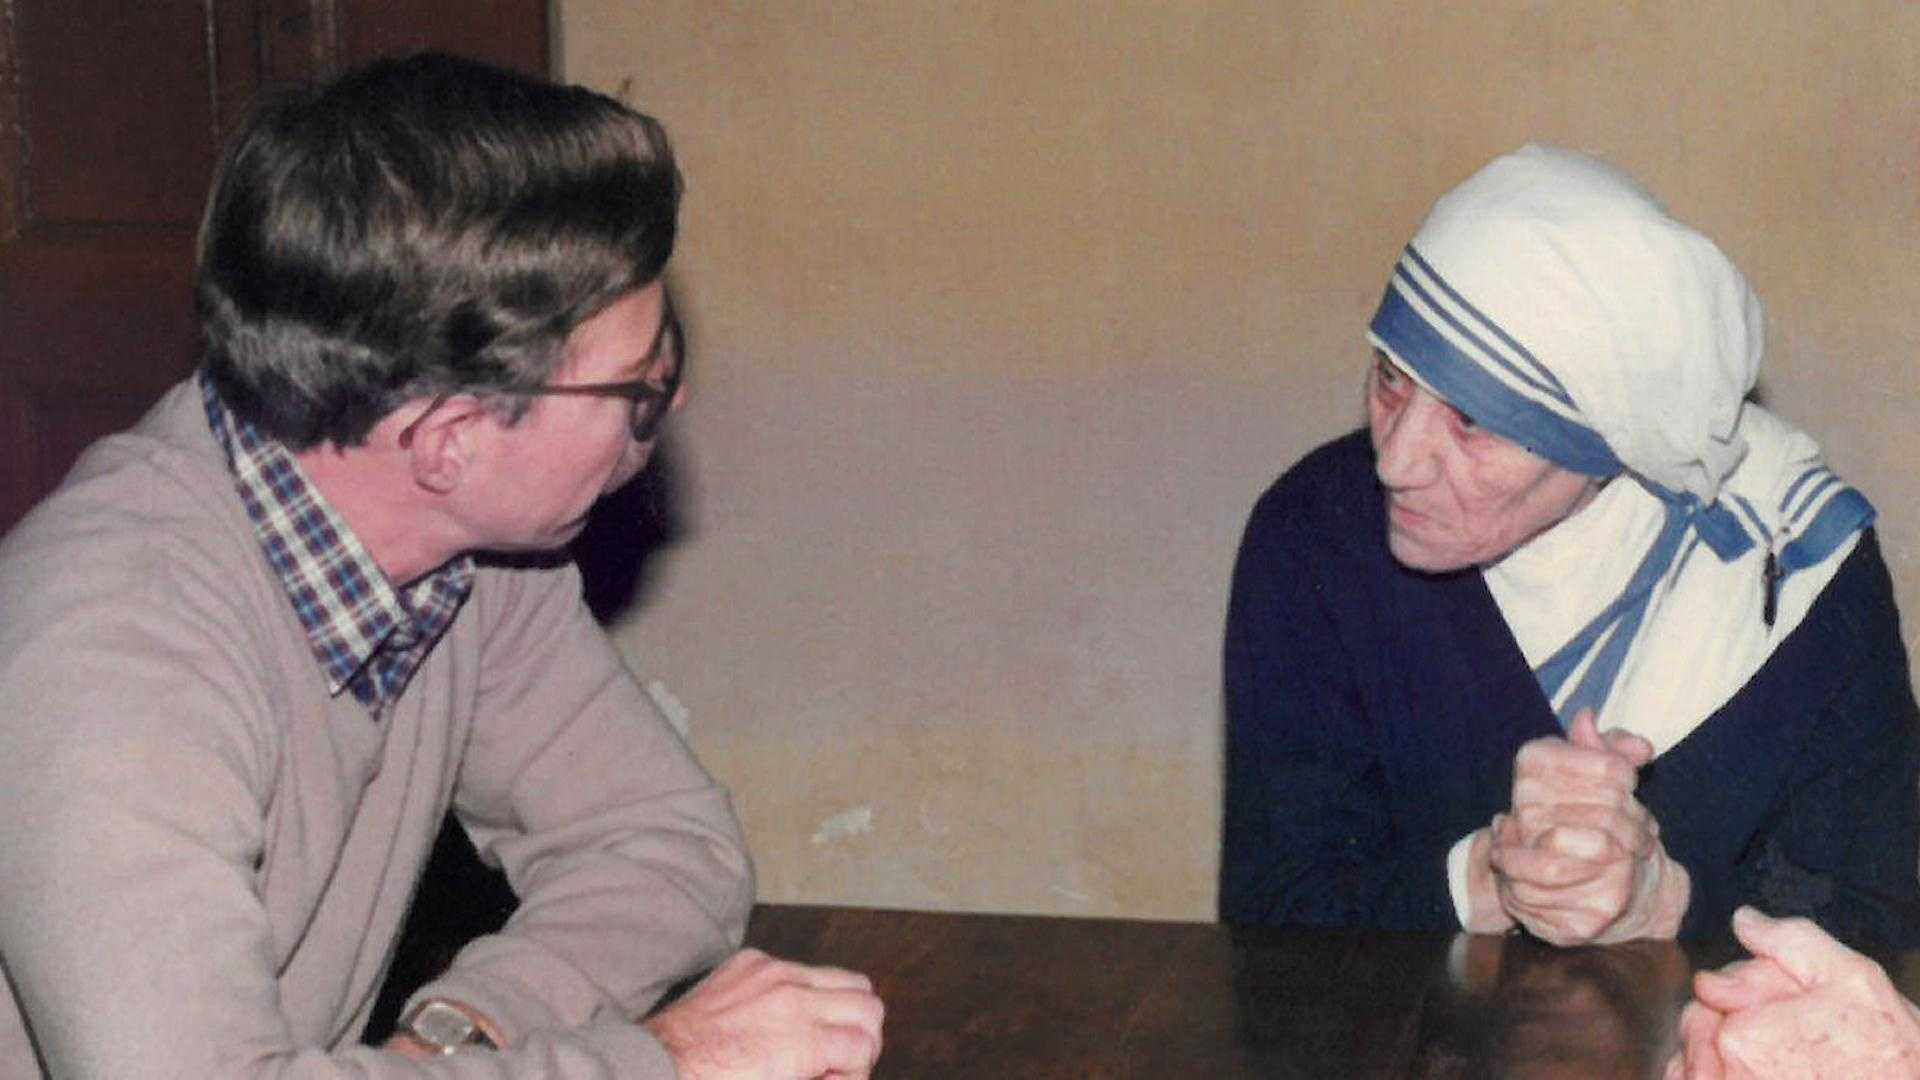 Catholic Relief Services' Jim DeHarpporte reflects on time he spent with Mother Teresa, who will be canonized as a saint on Sunday.